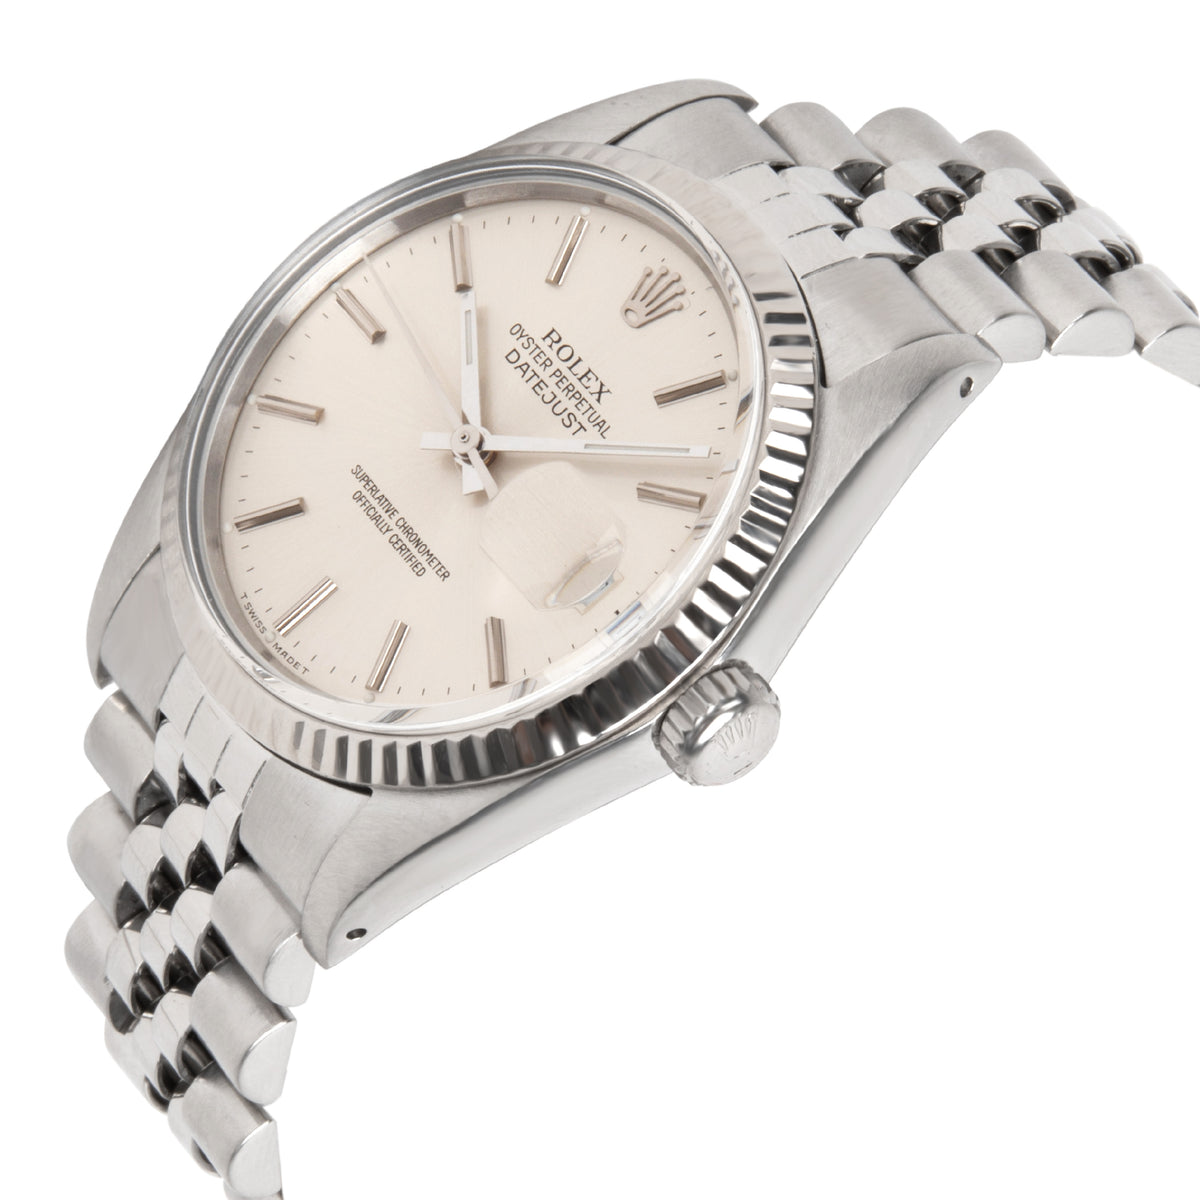 Rolex Datejust 16014 Men's Watch in  Stainless Steel